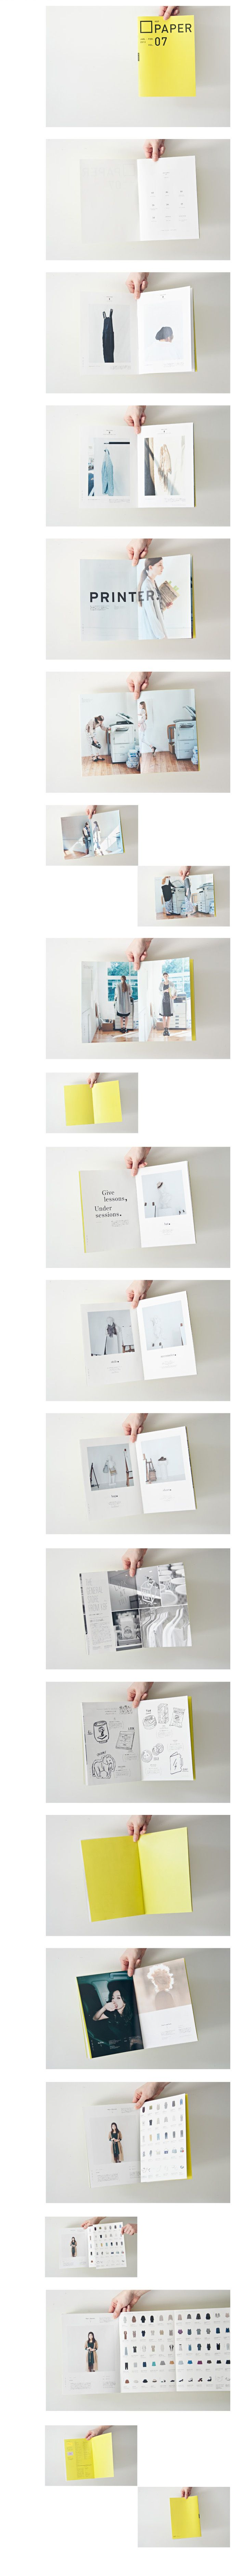 As I wear a lot of white this is one of the main inspirations for my design to use white space. This is to create a clean look that I use in my appearance and design work. It's also to frame the work and allow the type to breath. This book is w prefect example of how I want my book to look and flow.